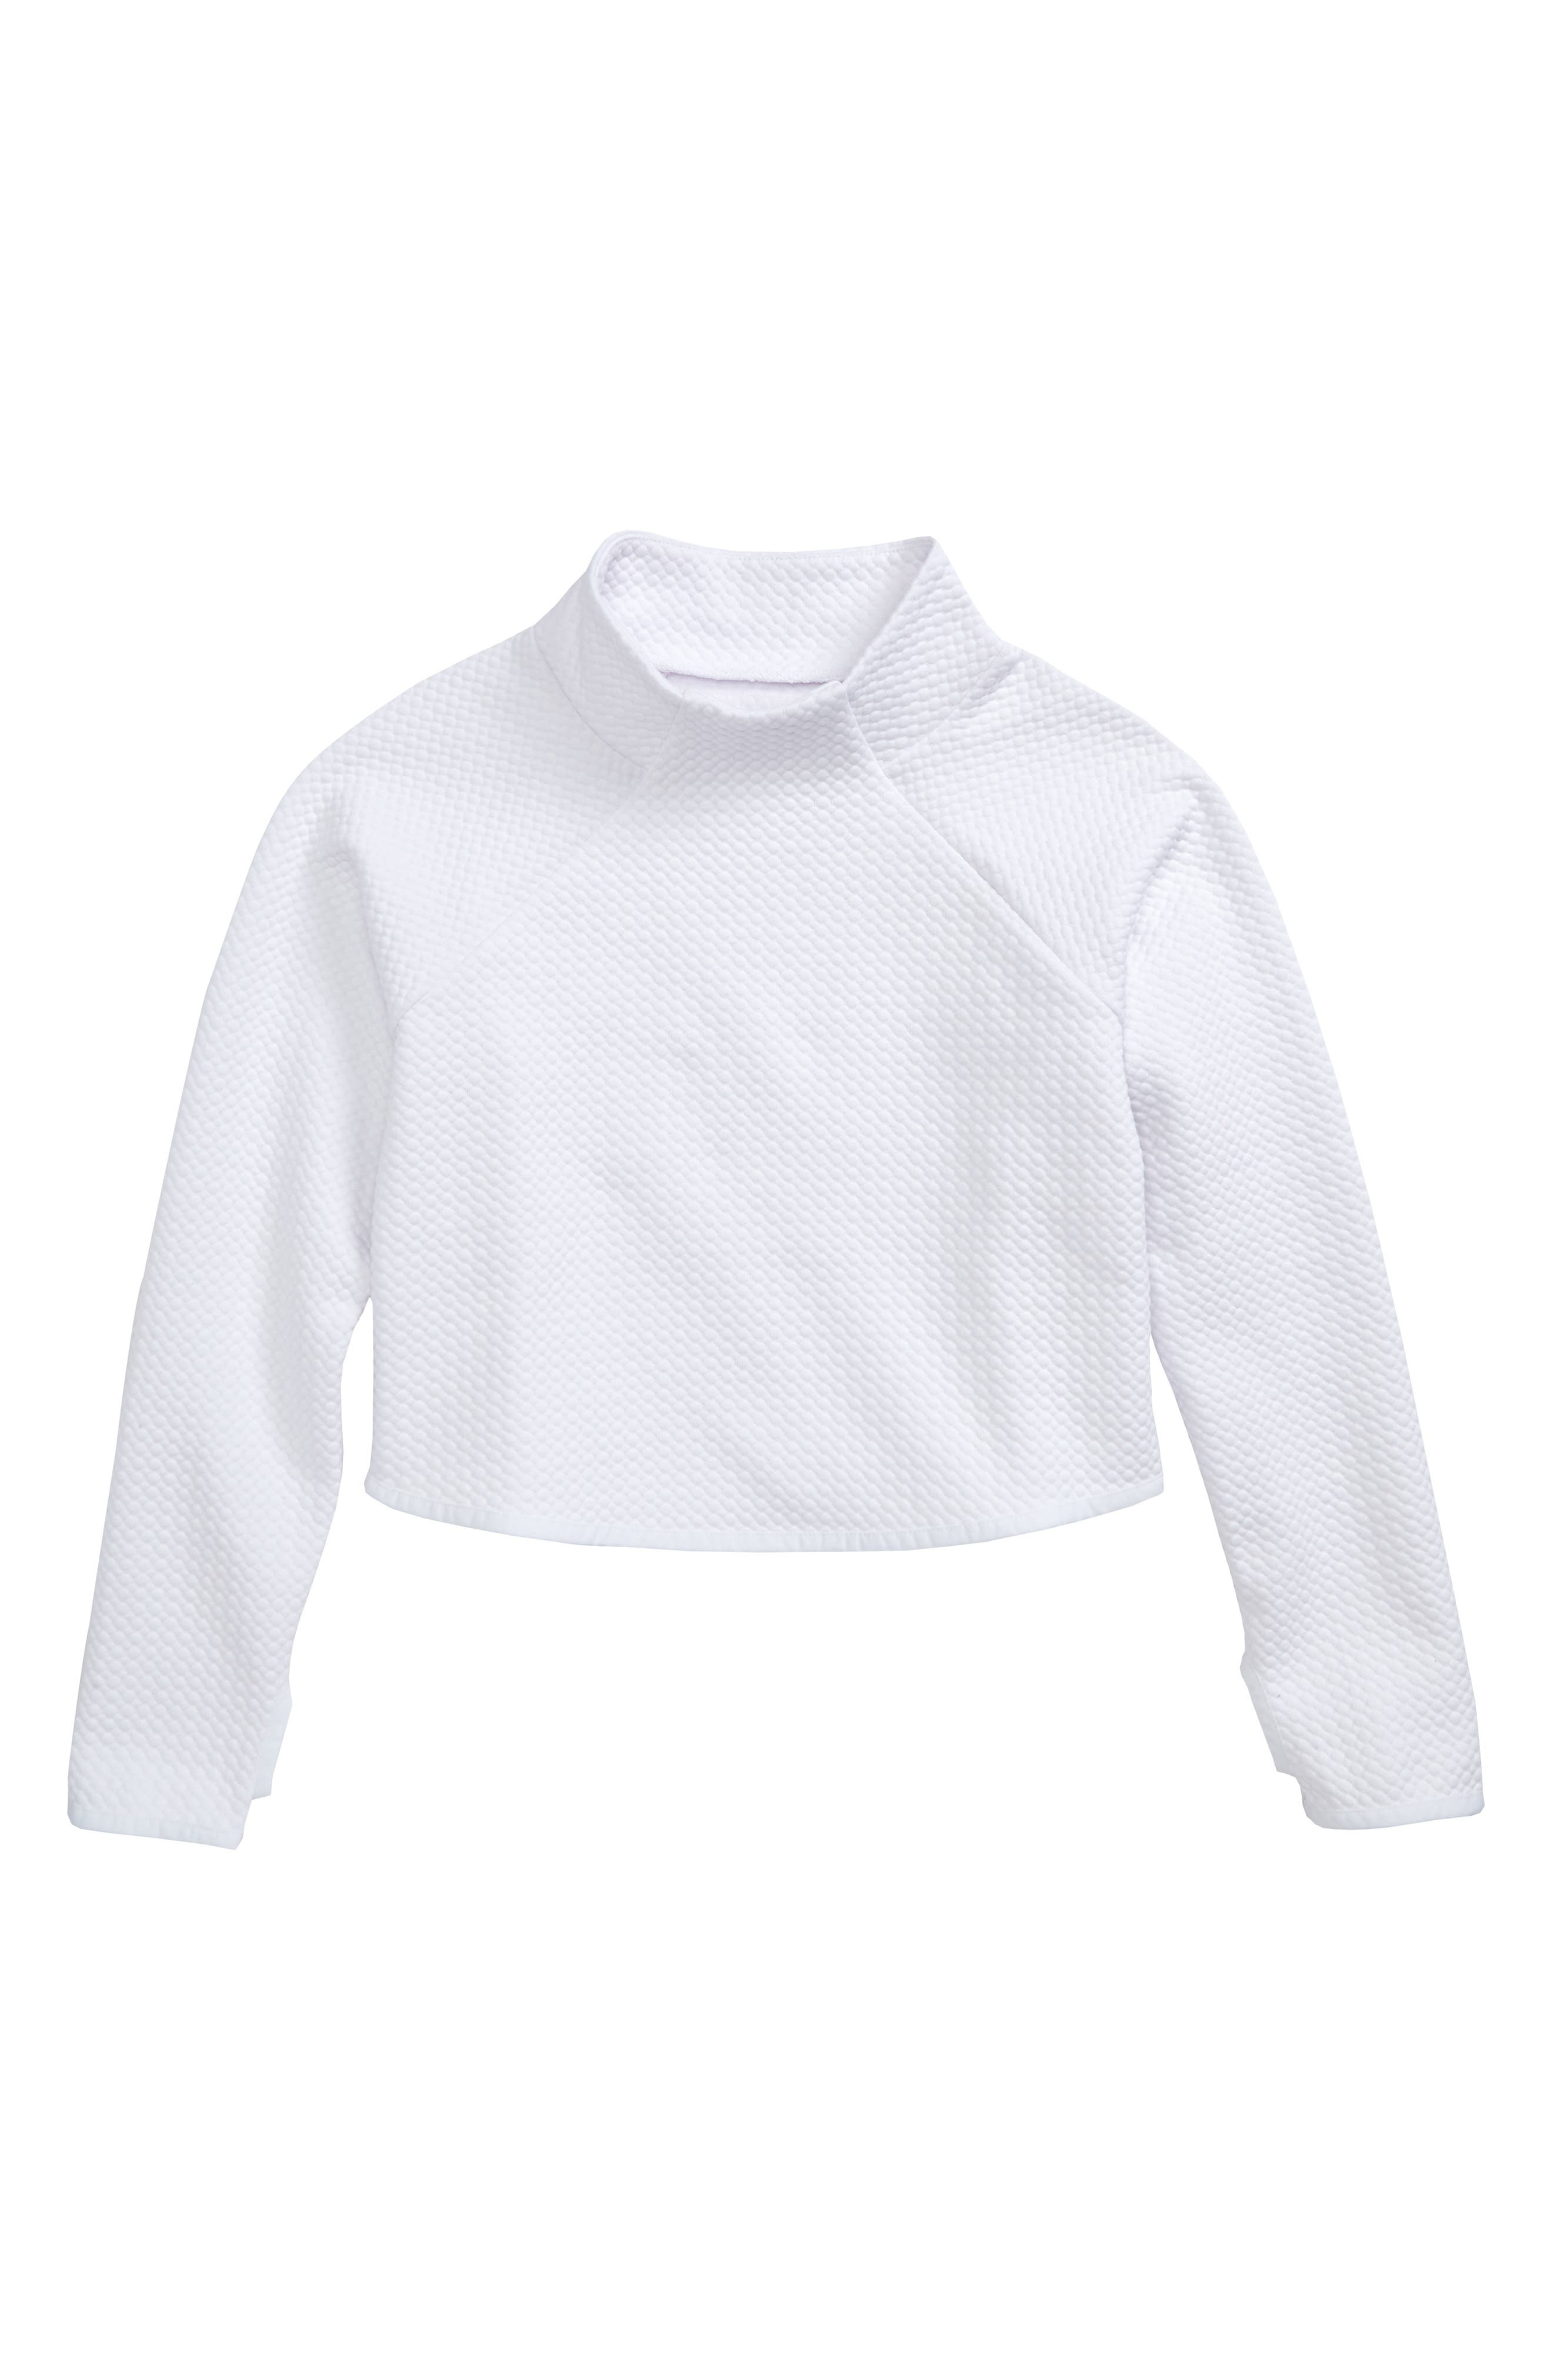 Alternate Image 1 Selected - Zella Girl Mock Neck Scuba Sweatshirt (Little Girls & Big Girls)